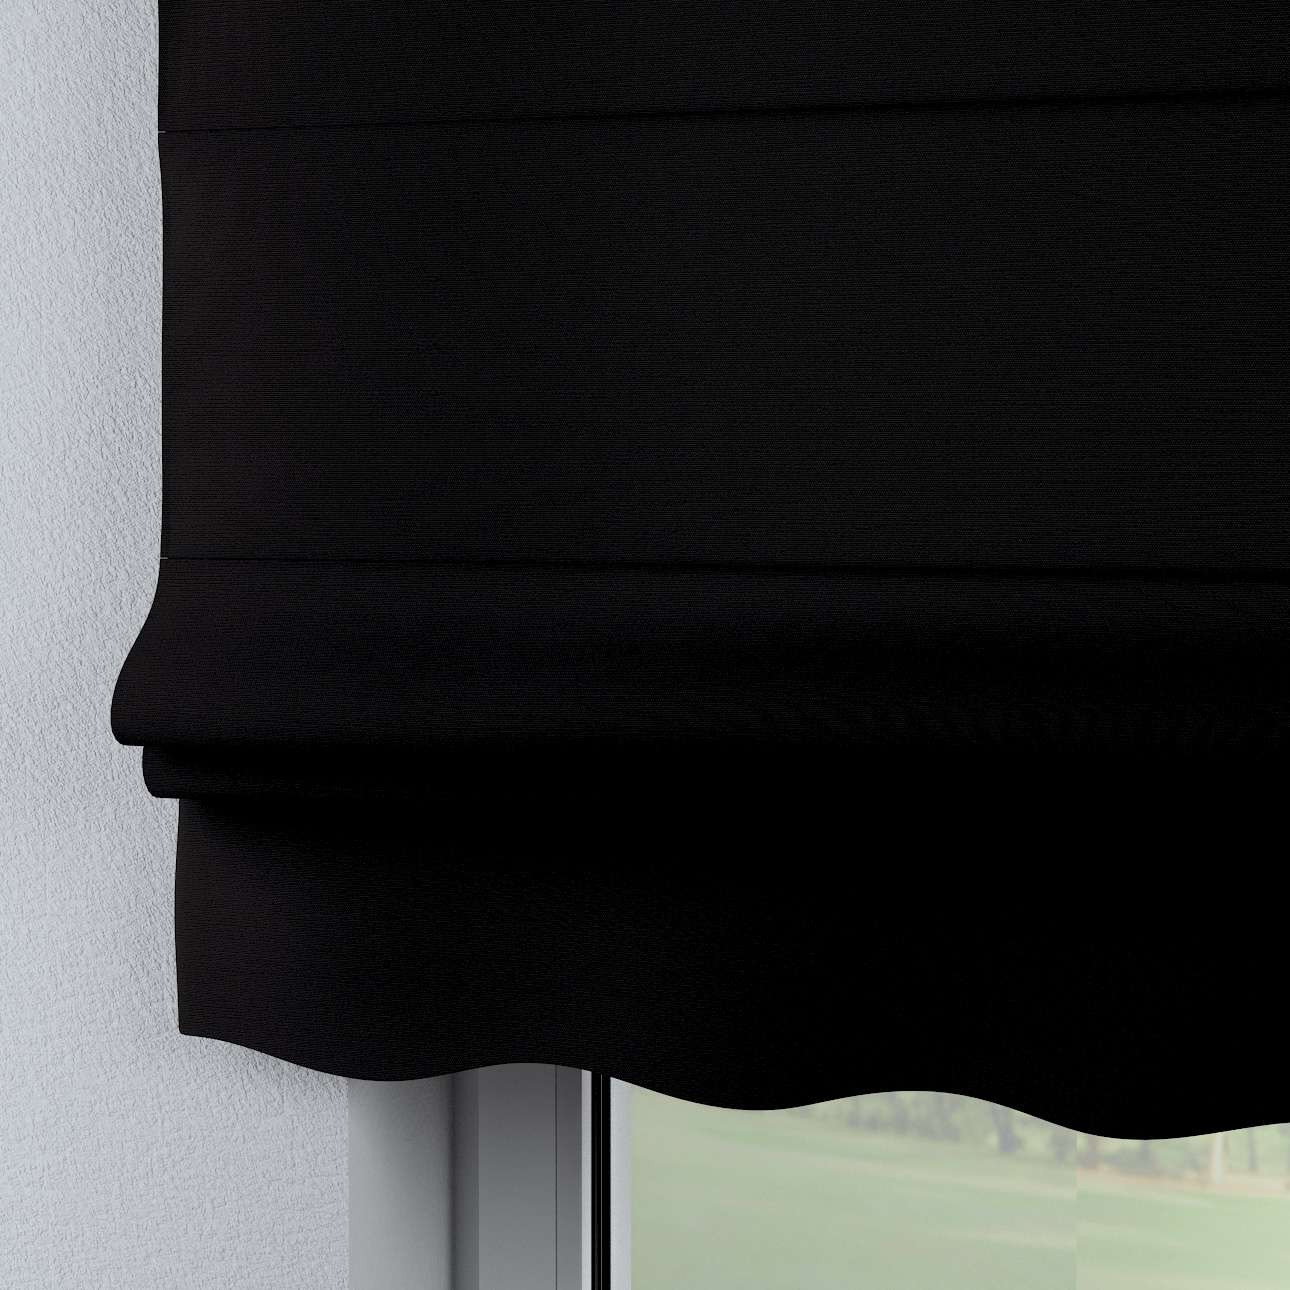 Florence roman blind  80 x 170 cm (31.5 x 67 inch) in collection Panama Cotton, fabric: 702-08